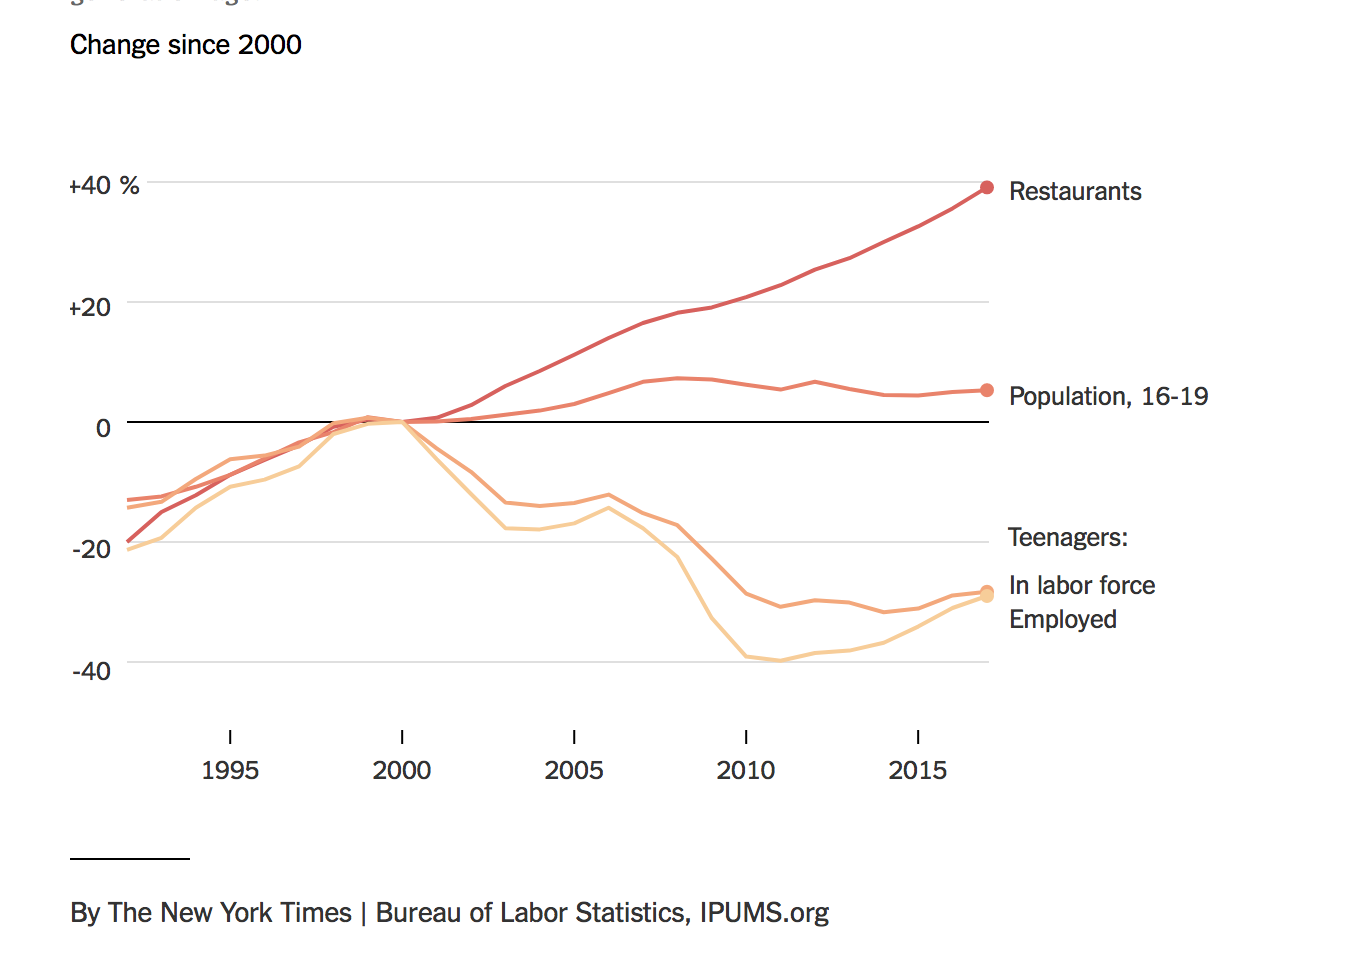 Fast-food jobs are growing nearly twice as fast as employmenmt overall, and teenagers in labor are decreasing.